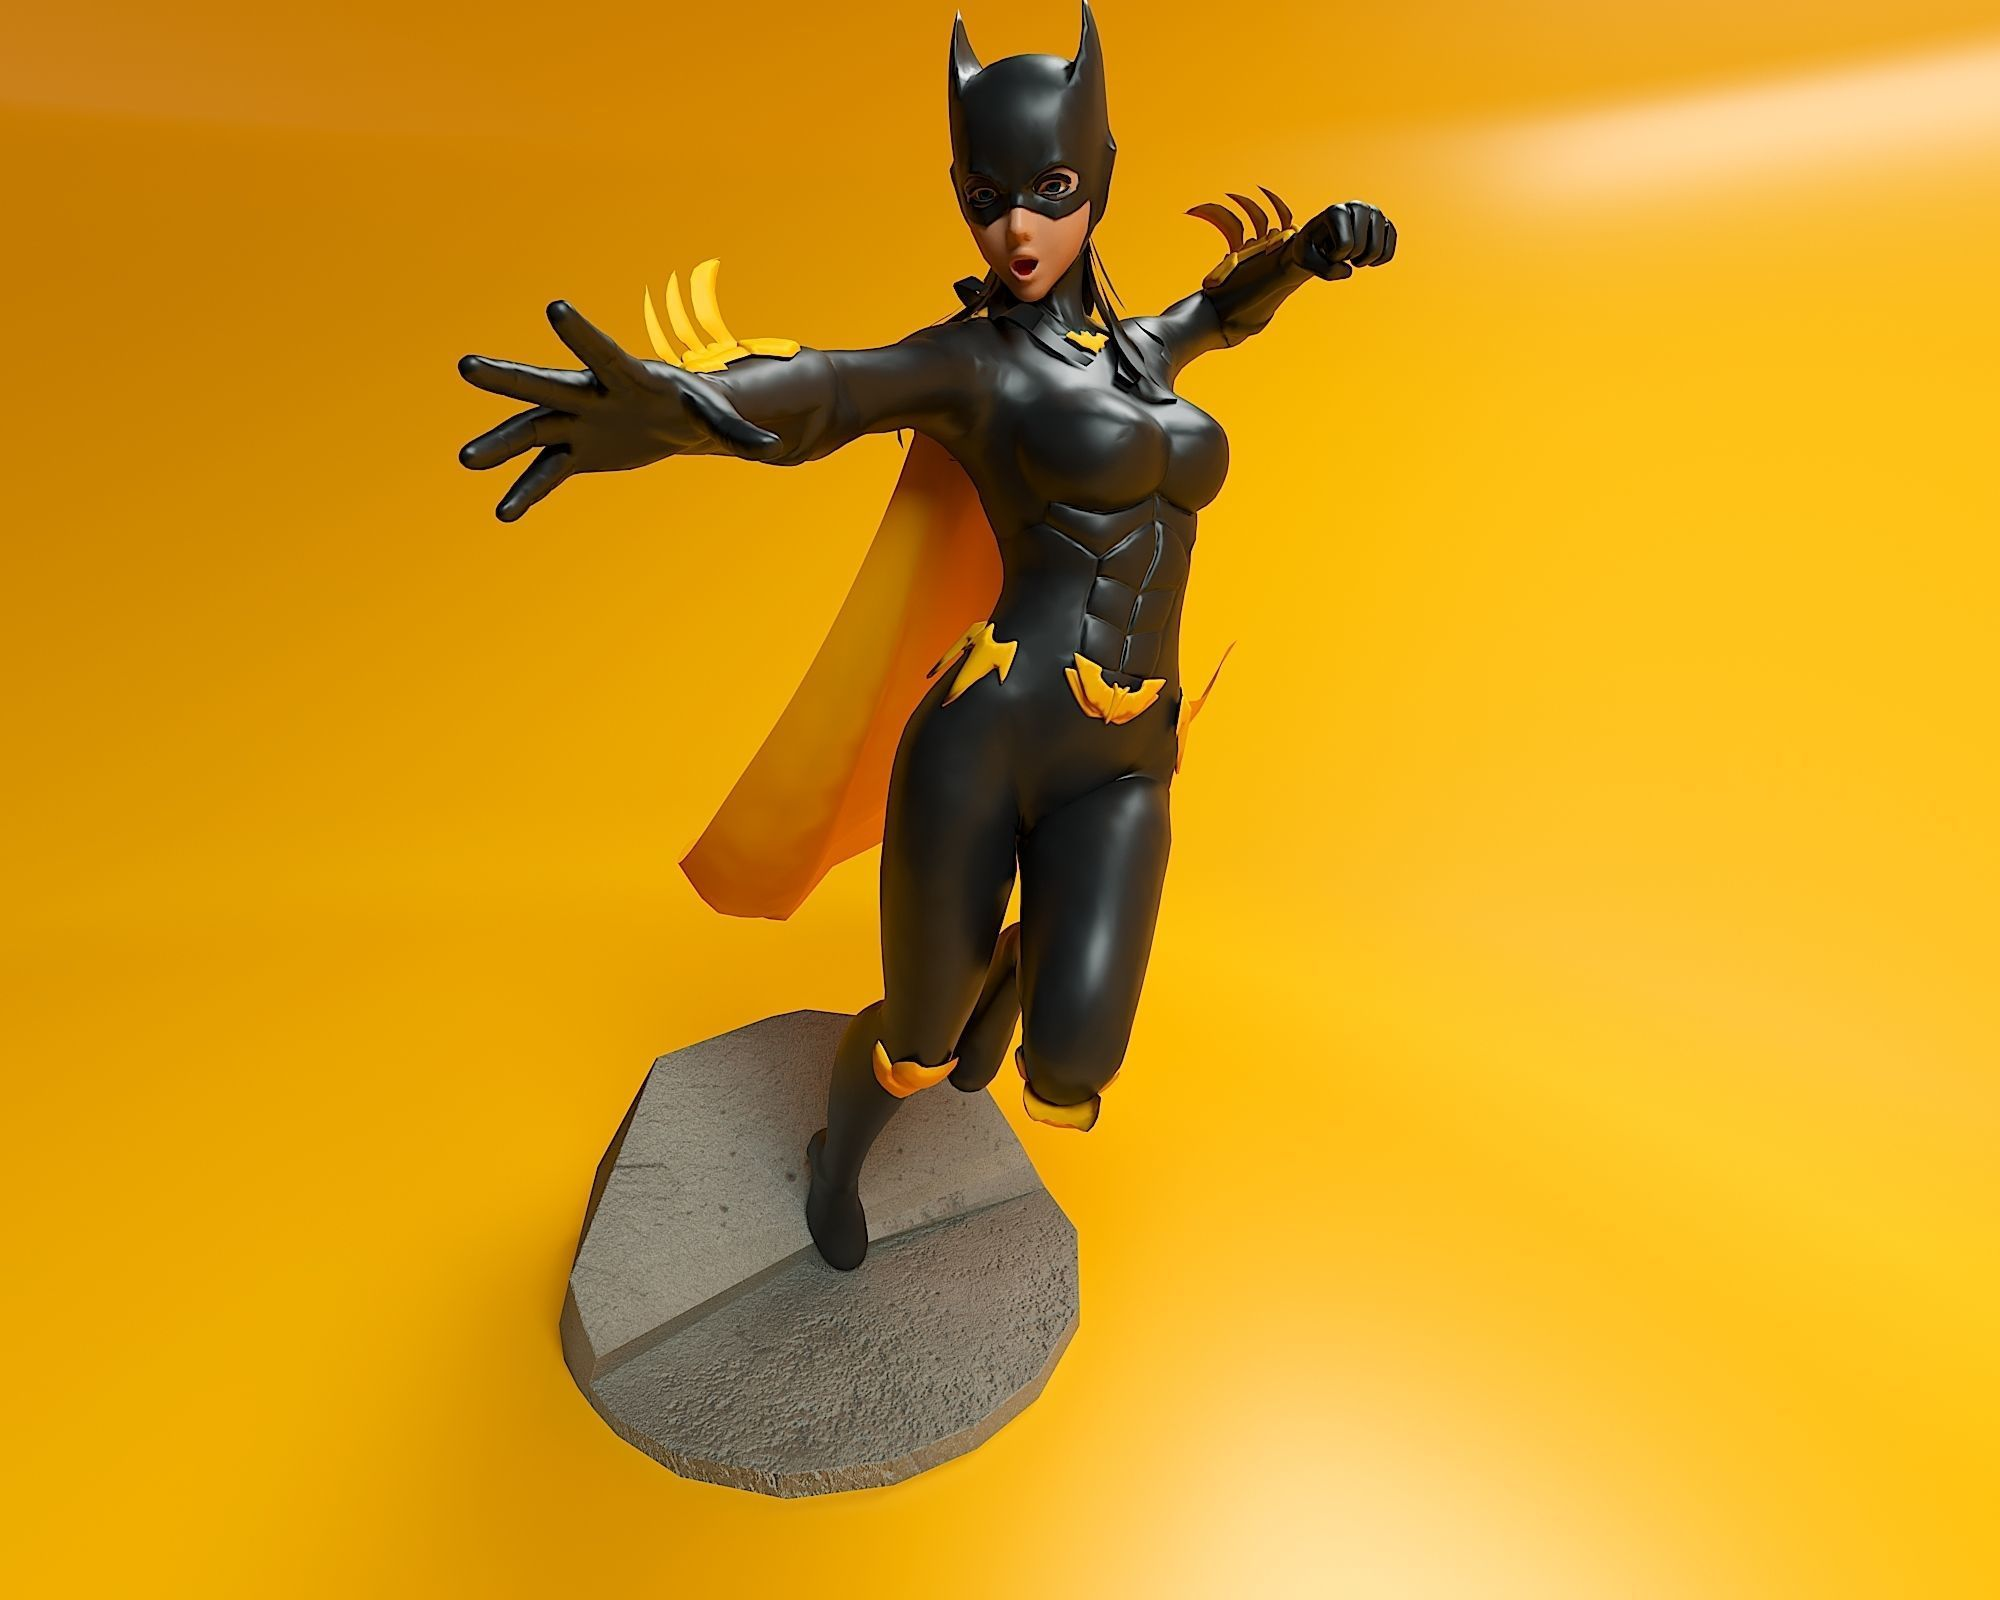 image about Batgirl Logo Printable referred to as BatGirl 3D Print Type